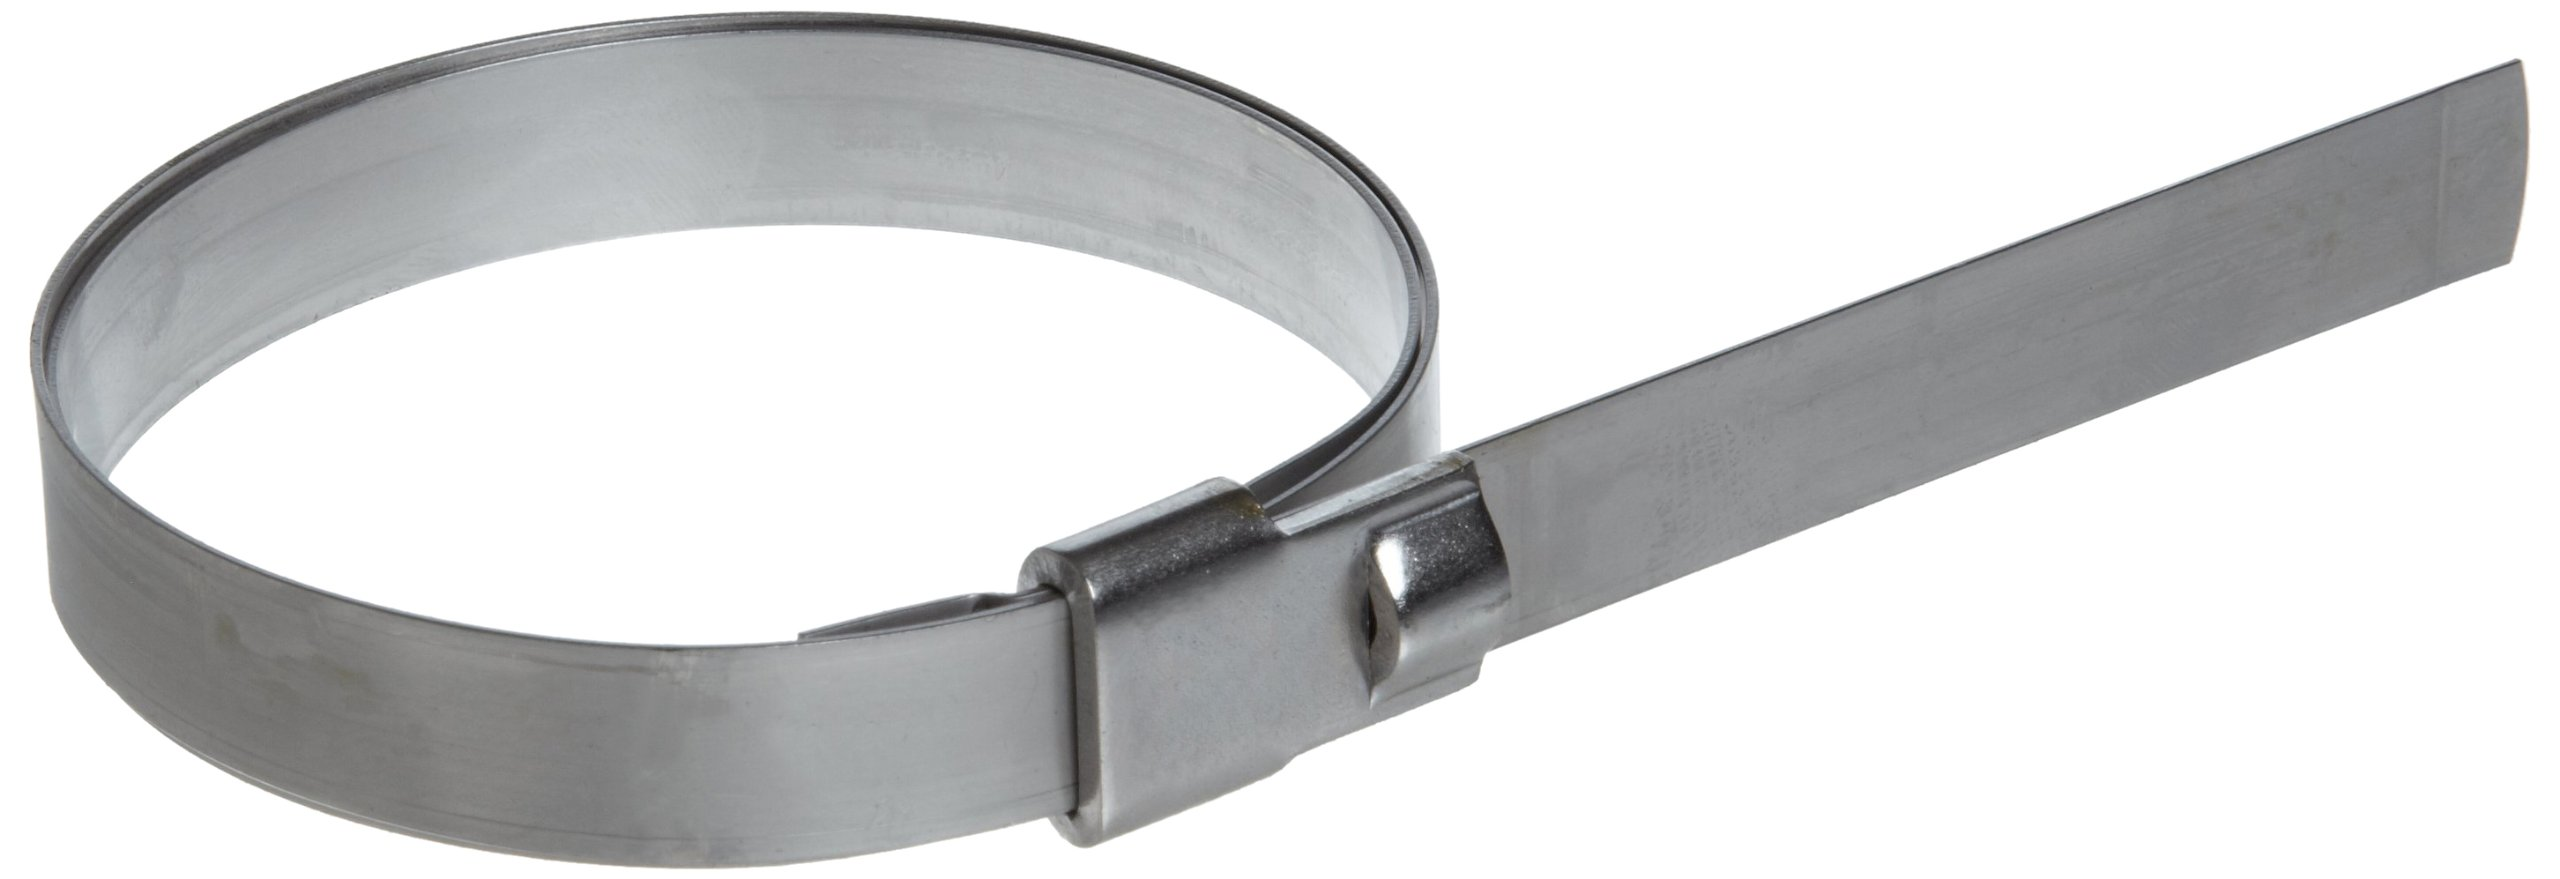 BAND-IT UL2119 Ultra-Lok 3/4'' Wide x 0.030'' Thick, 3'' Diameter, 201 1/4 Hard Stainless Steel Preformed Clamp (50 Per Box)